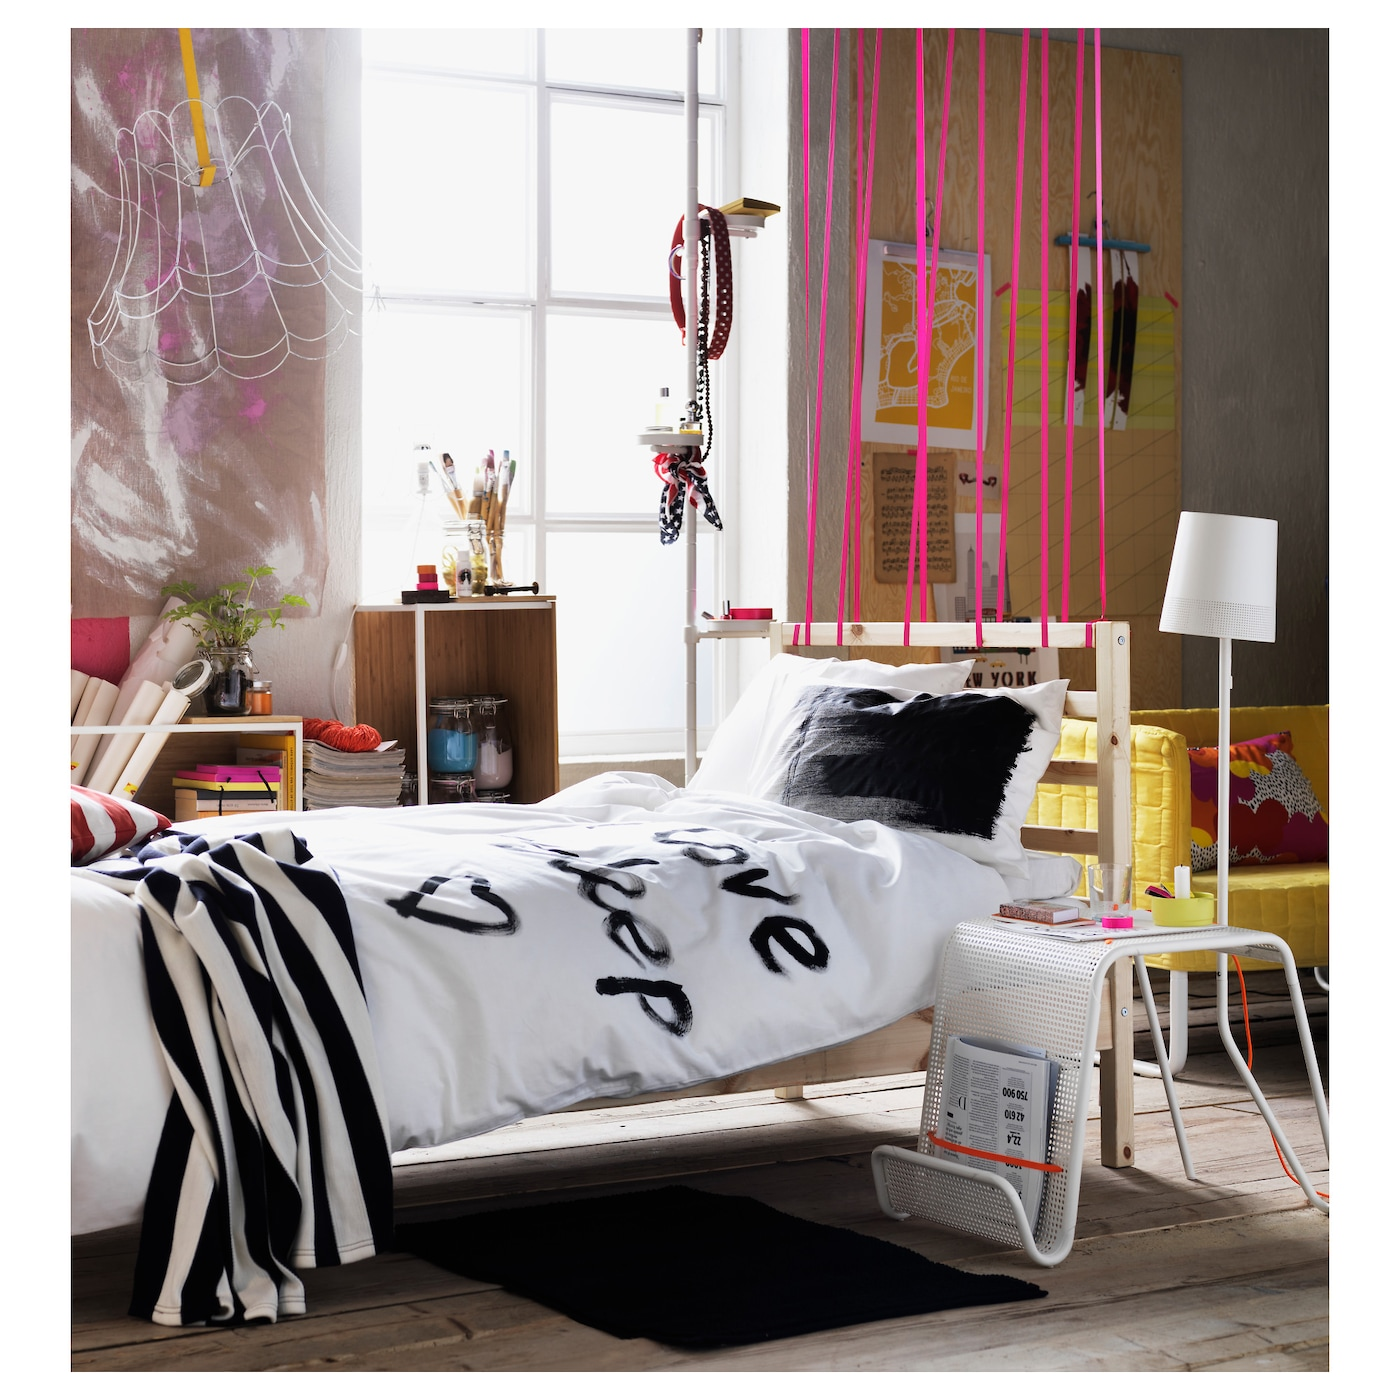 tarva cadre de lit pin l nset 90x200 cm ikea. Black Bedroom Furniture Sets. Home Design Ideas